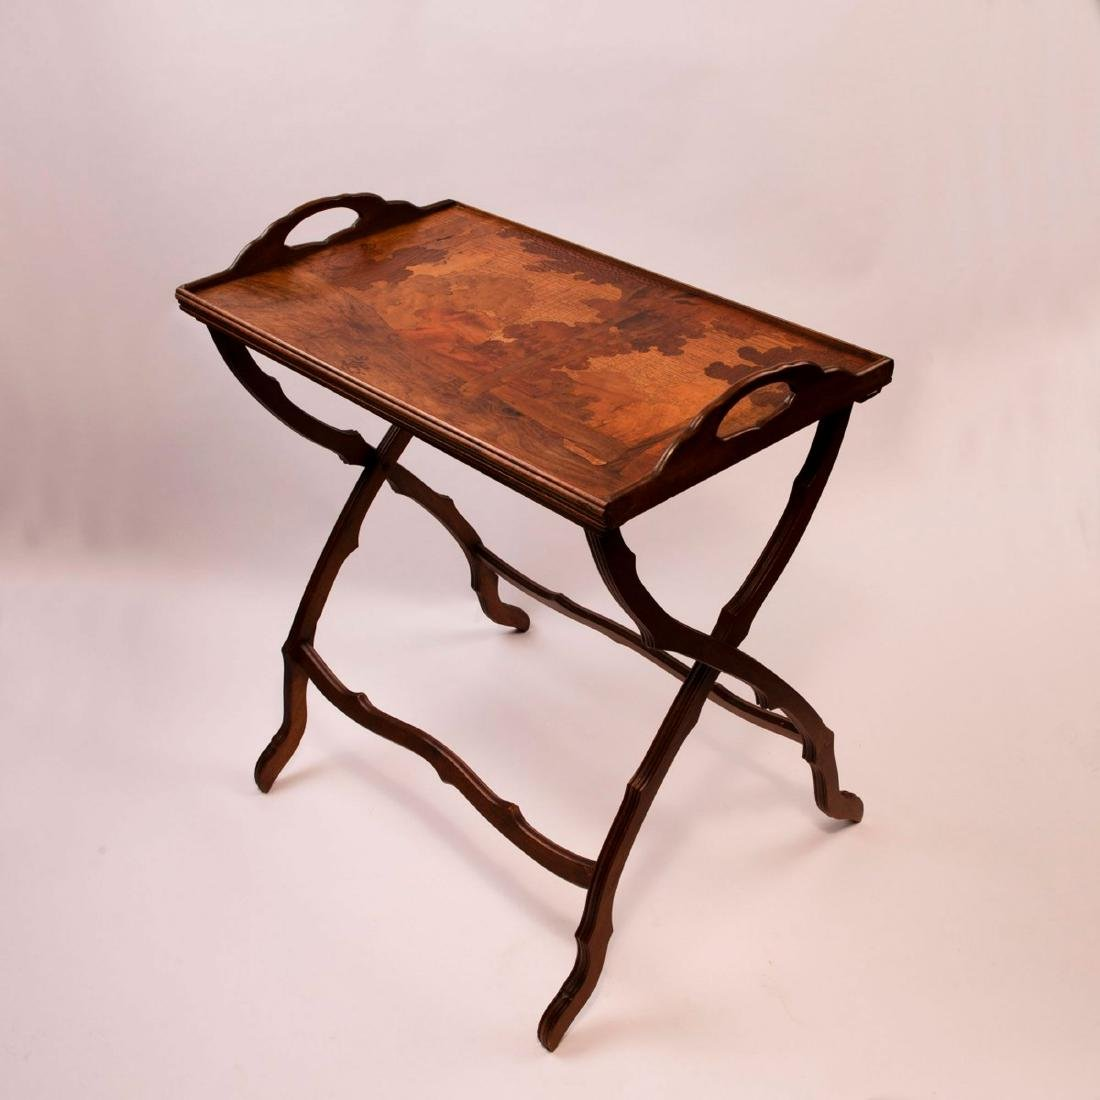 Folding table with tray, c. 1910